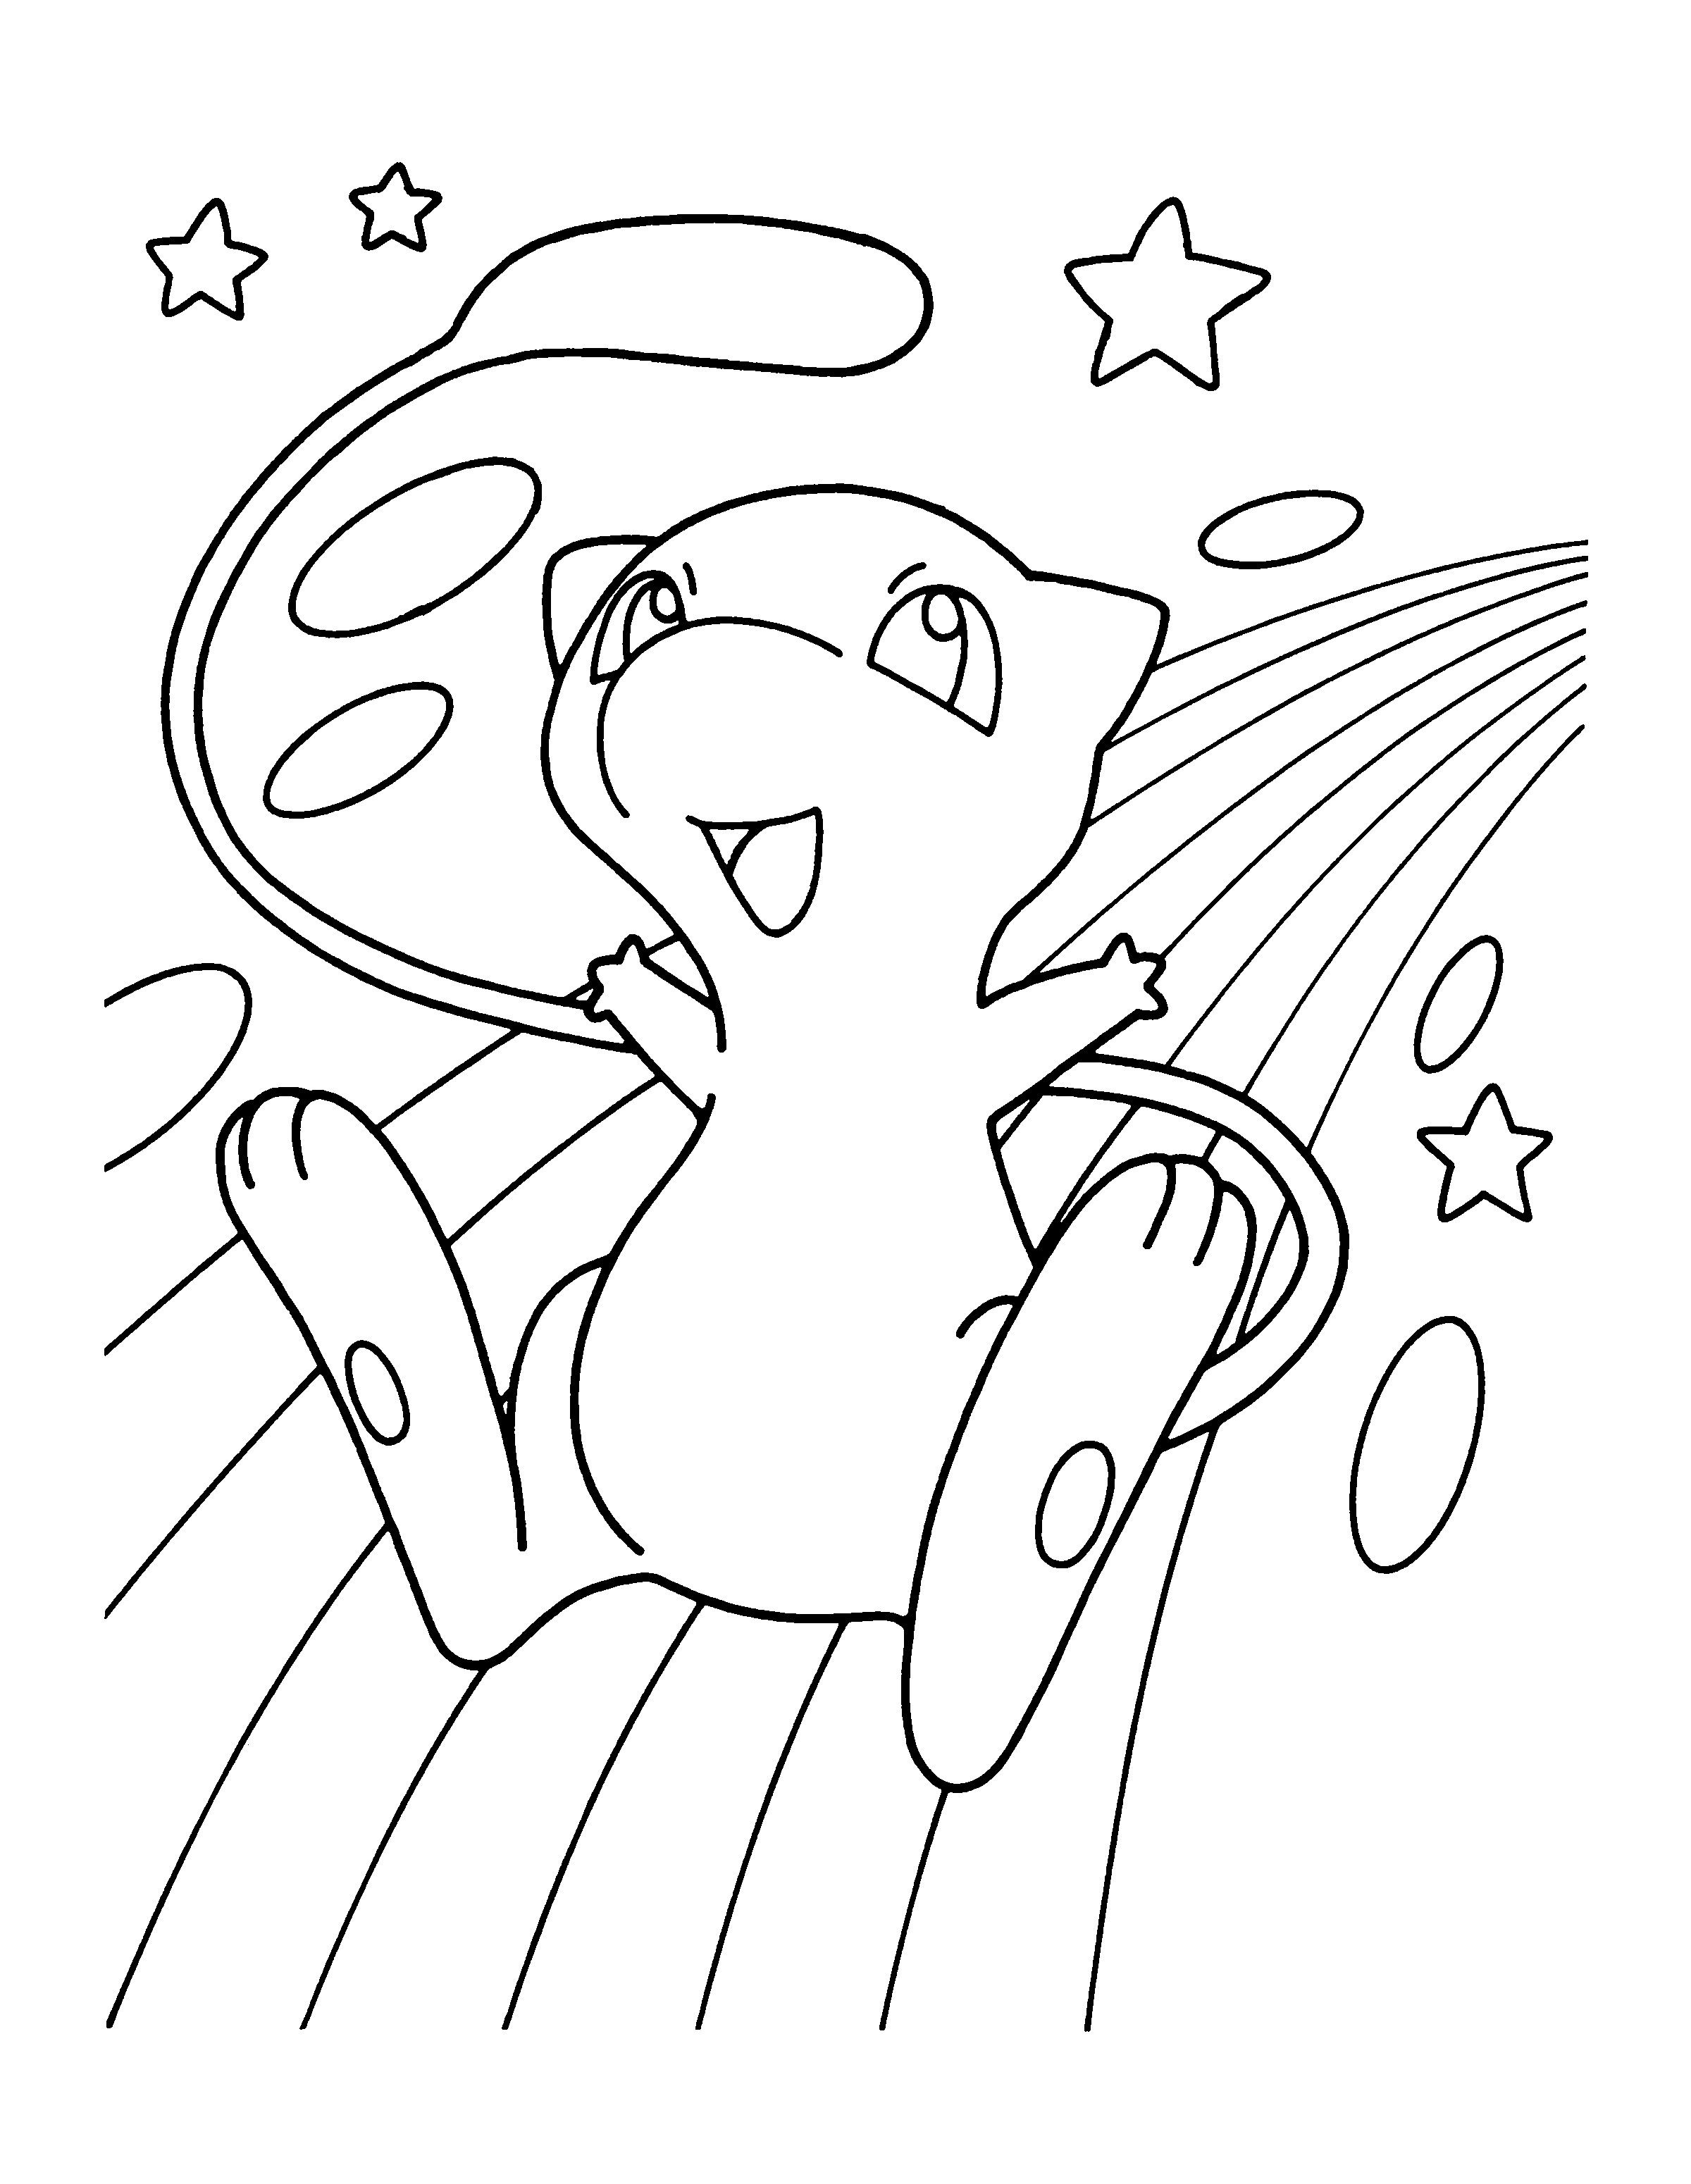 Pokemon Mew Coloring Pages From The Thousand Photographs Online In Relation To Pokemon Mew Coloring Pages Pokemon Para Colorir Pokemon Desenho Mew Pokemon